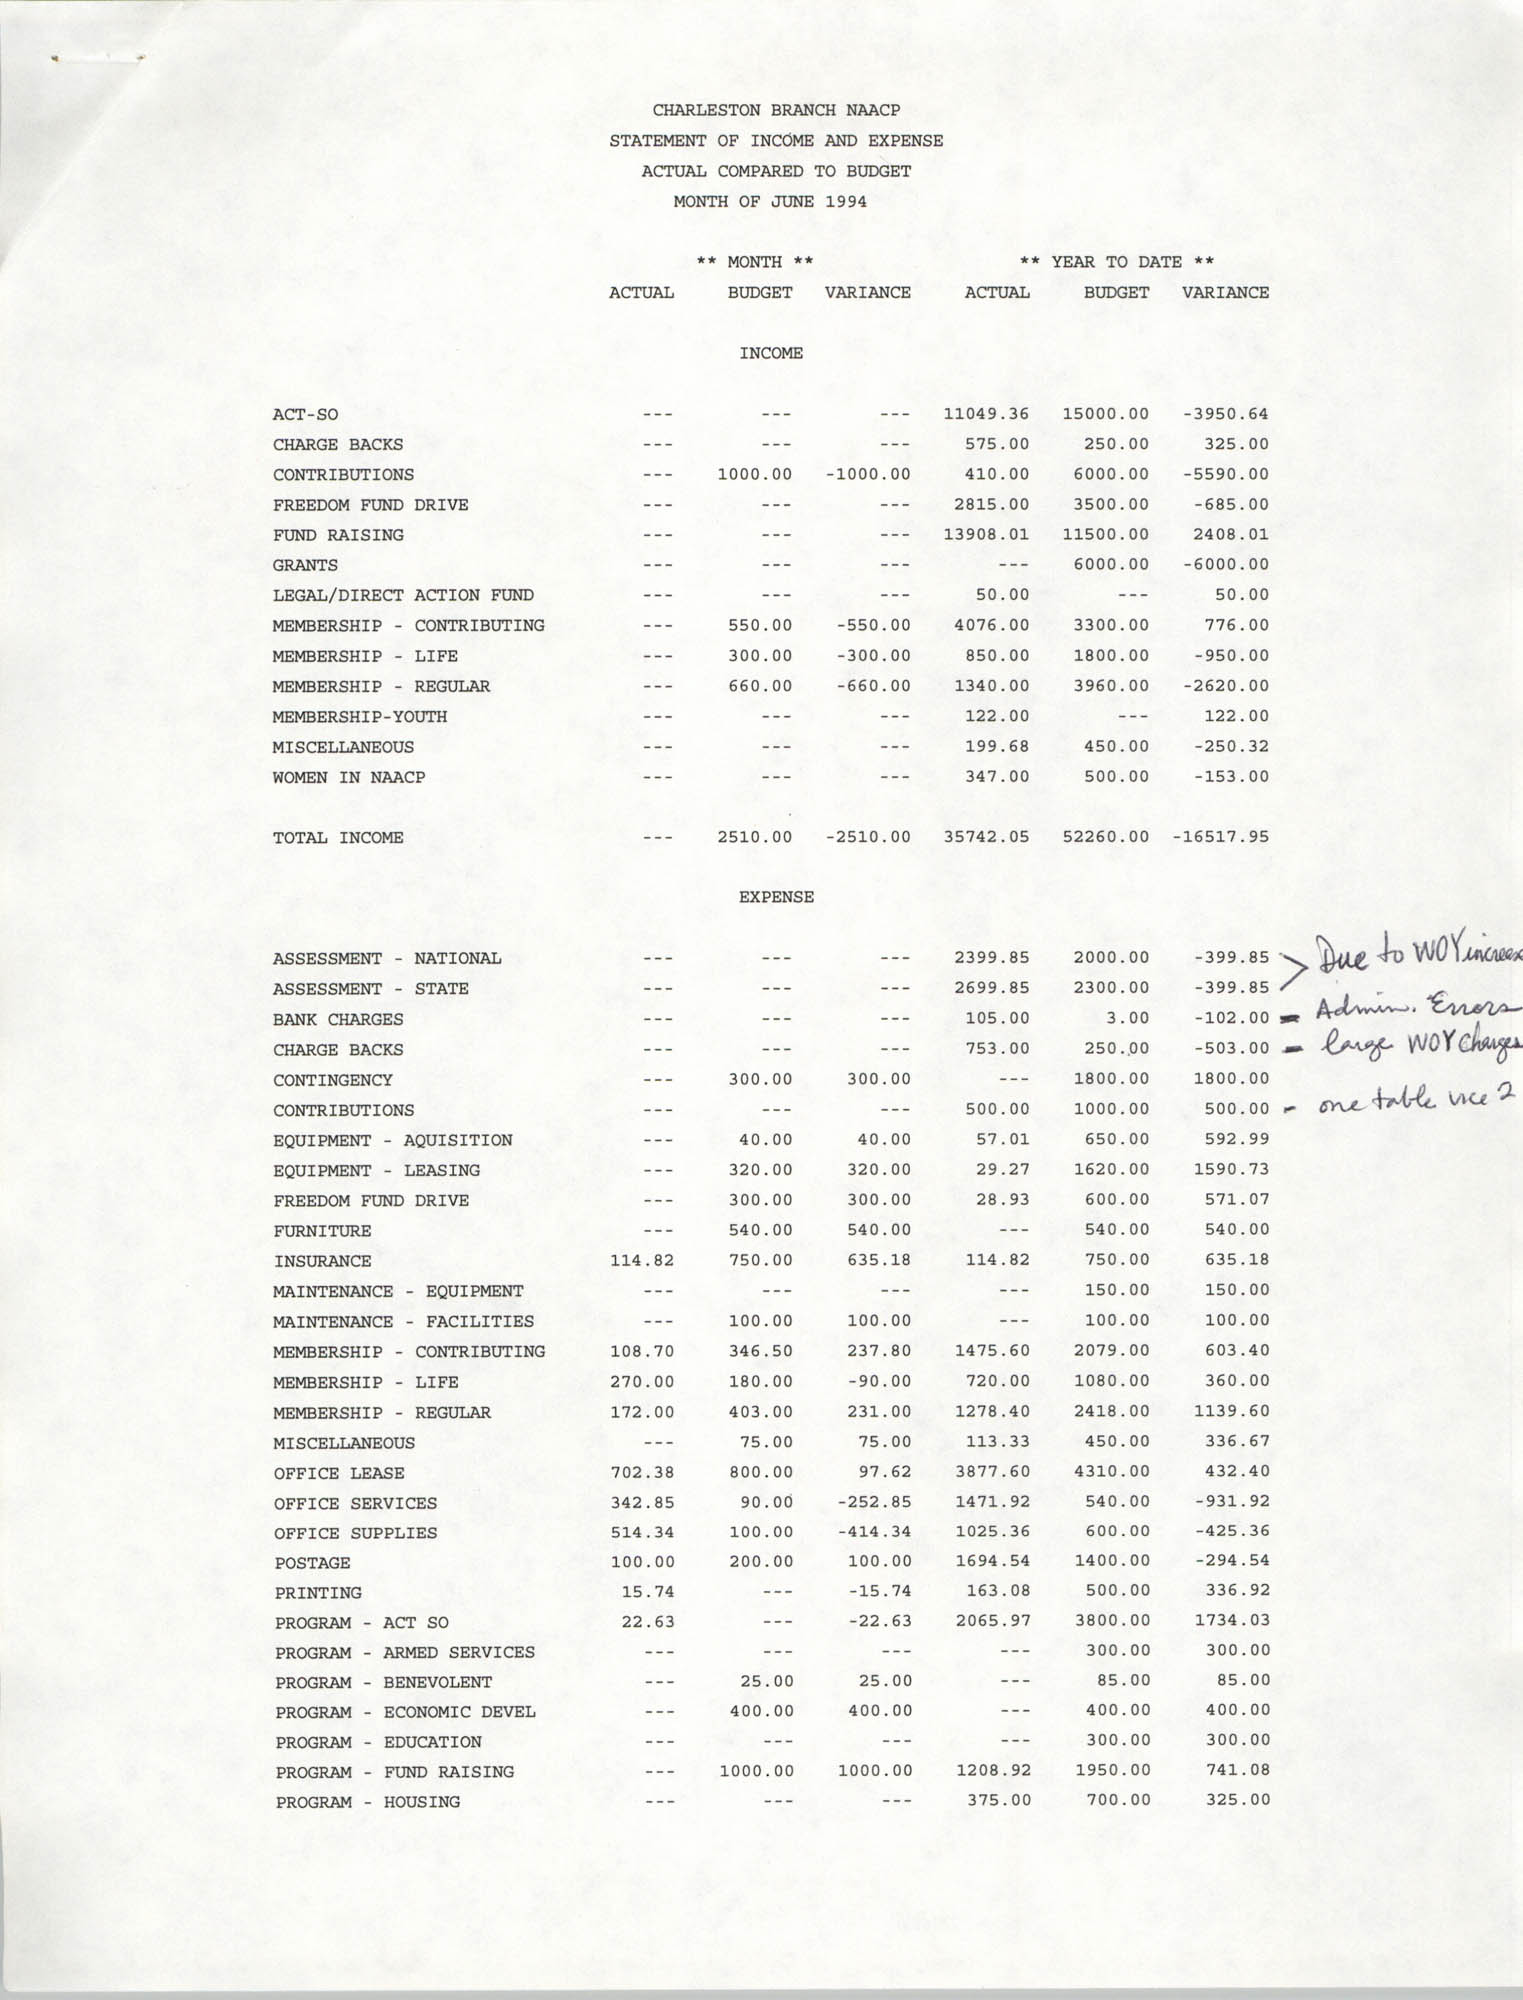 Charleston Branch of the NAACP Statement of Income and Expense, June 1994